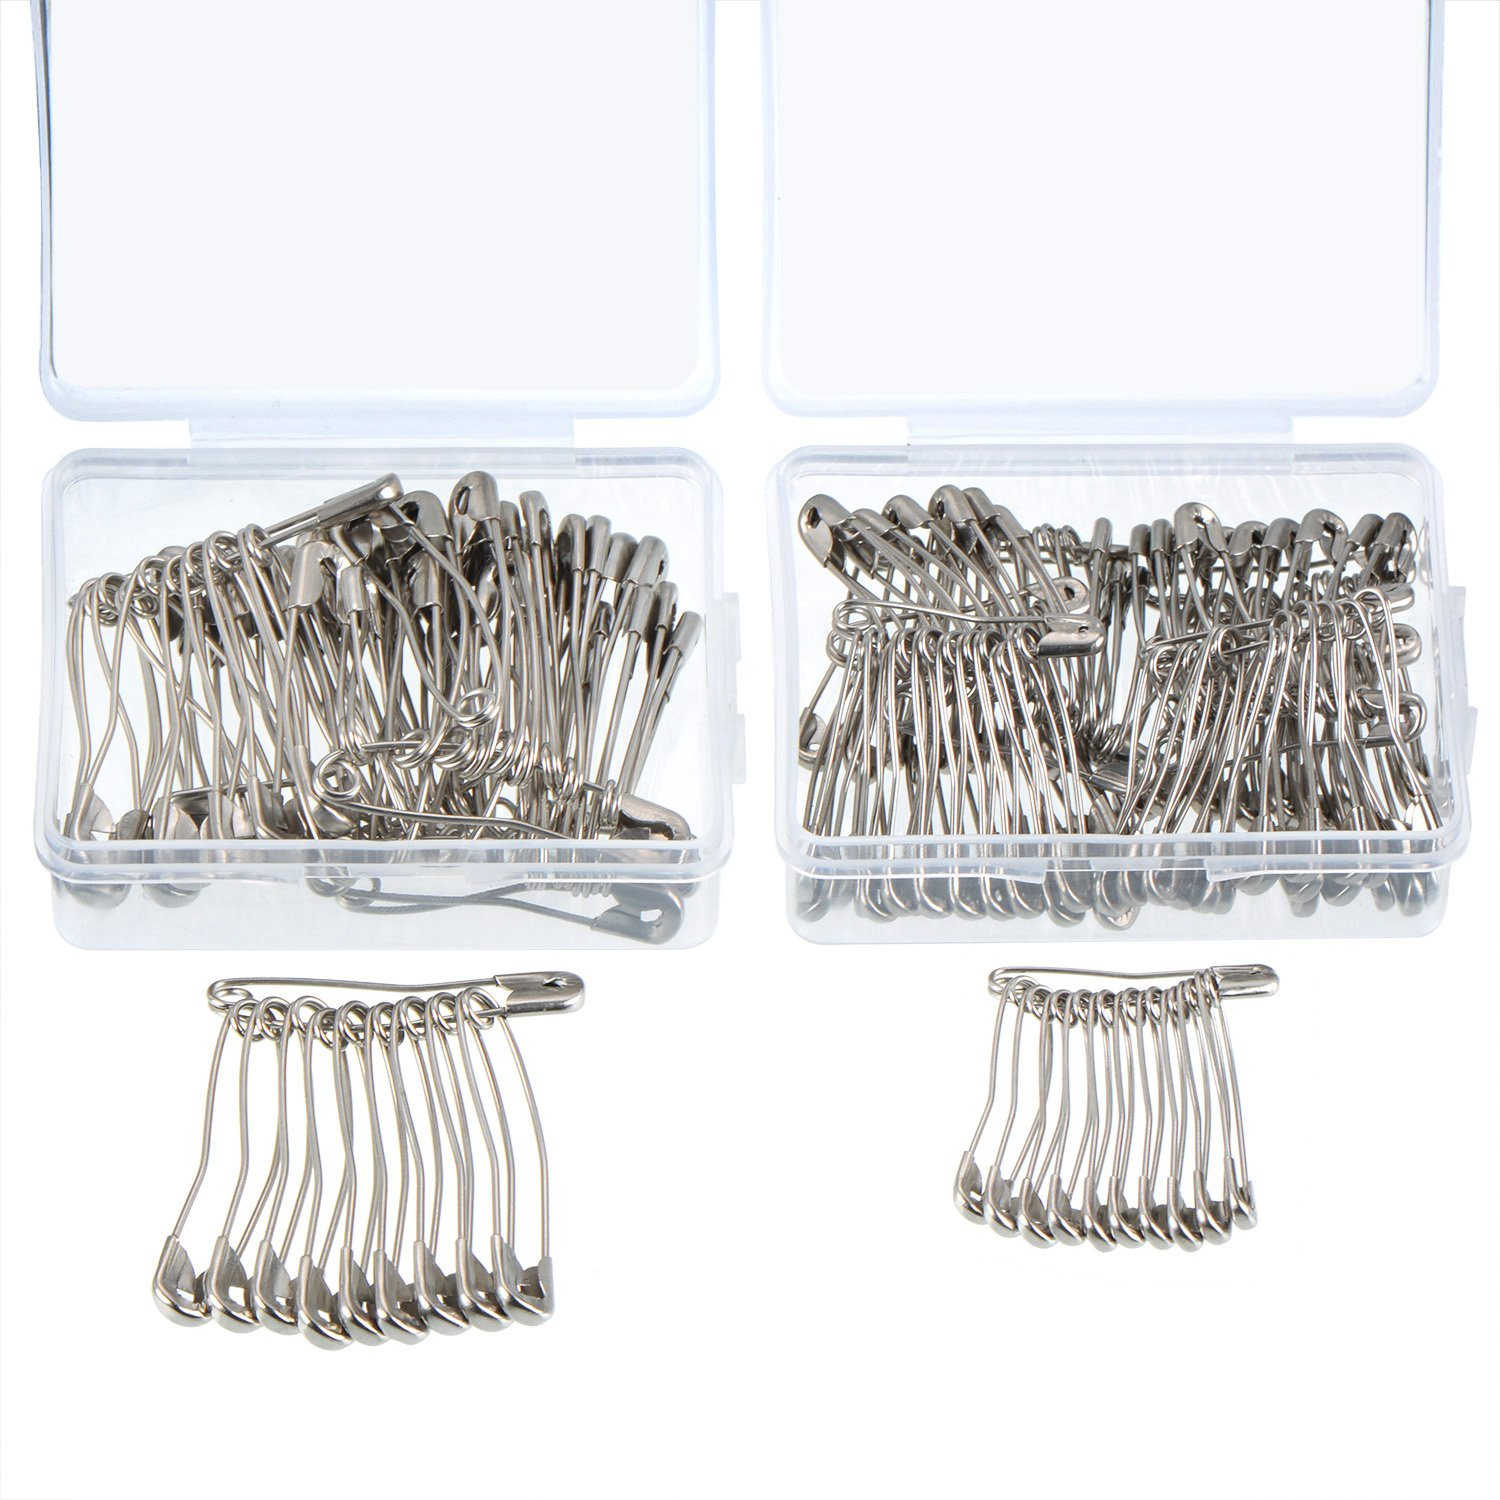 160 Pieces Curved Safety Pins Quilting Basting Pins with Plastic Cases, 2 Sizes, Nickel-plated Steel Outus 4337009932